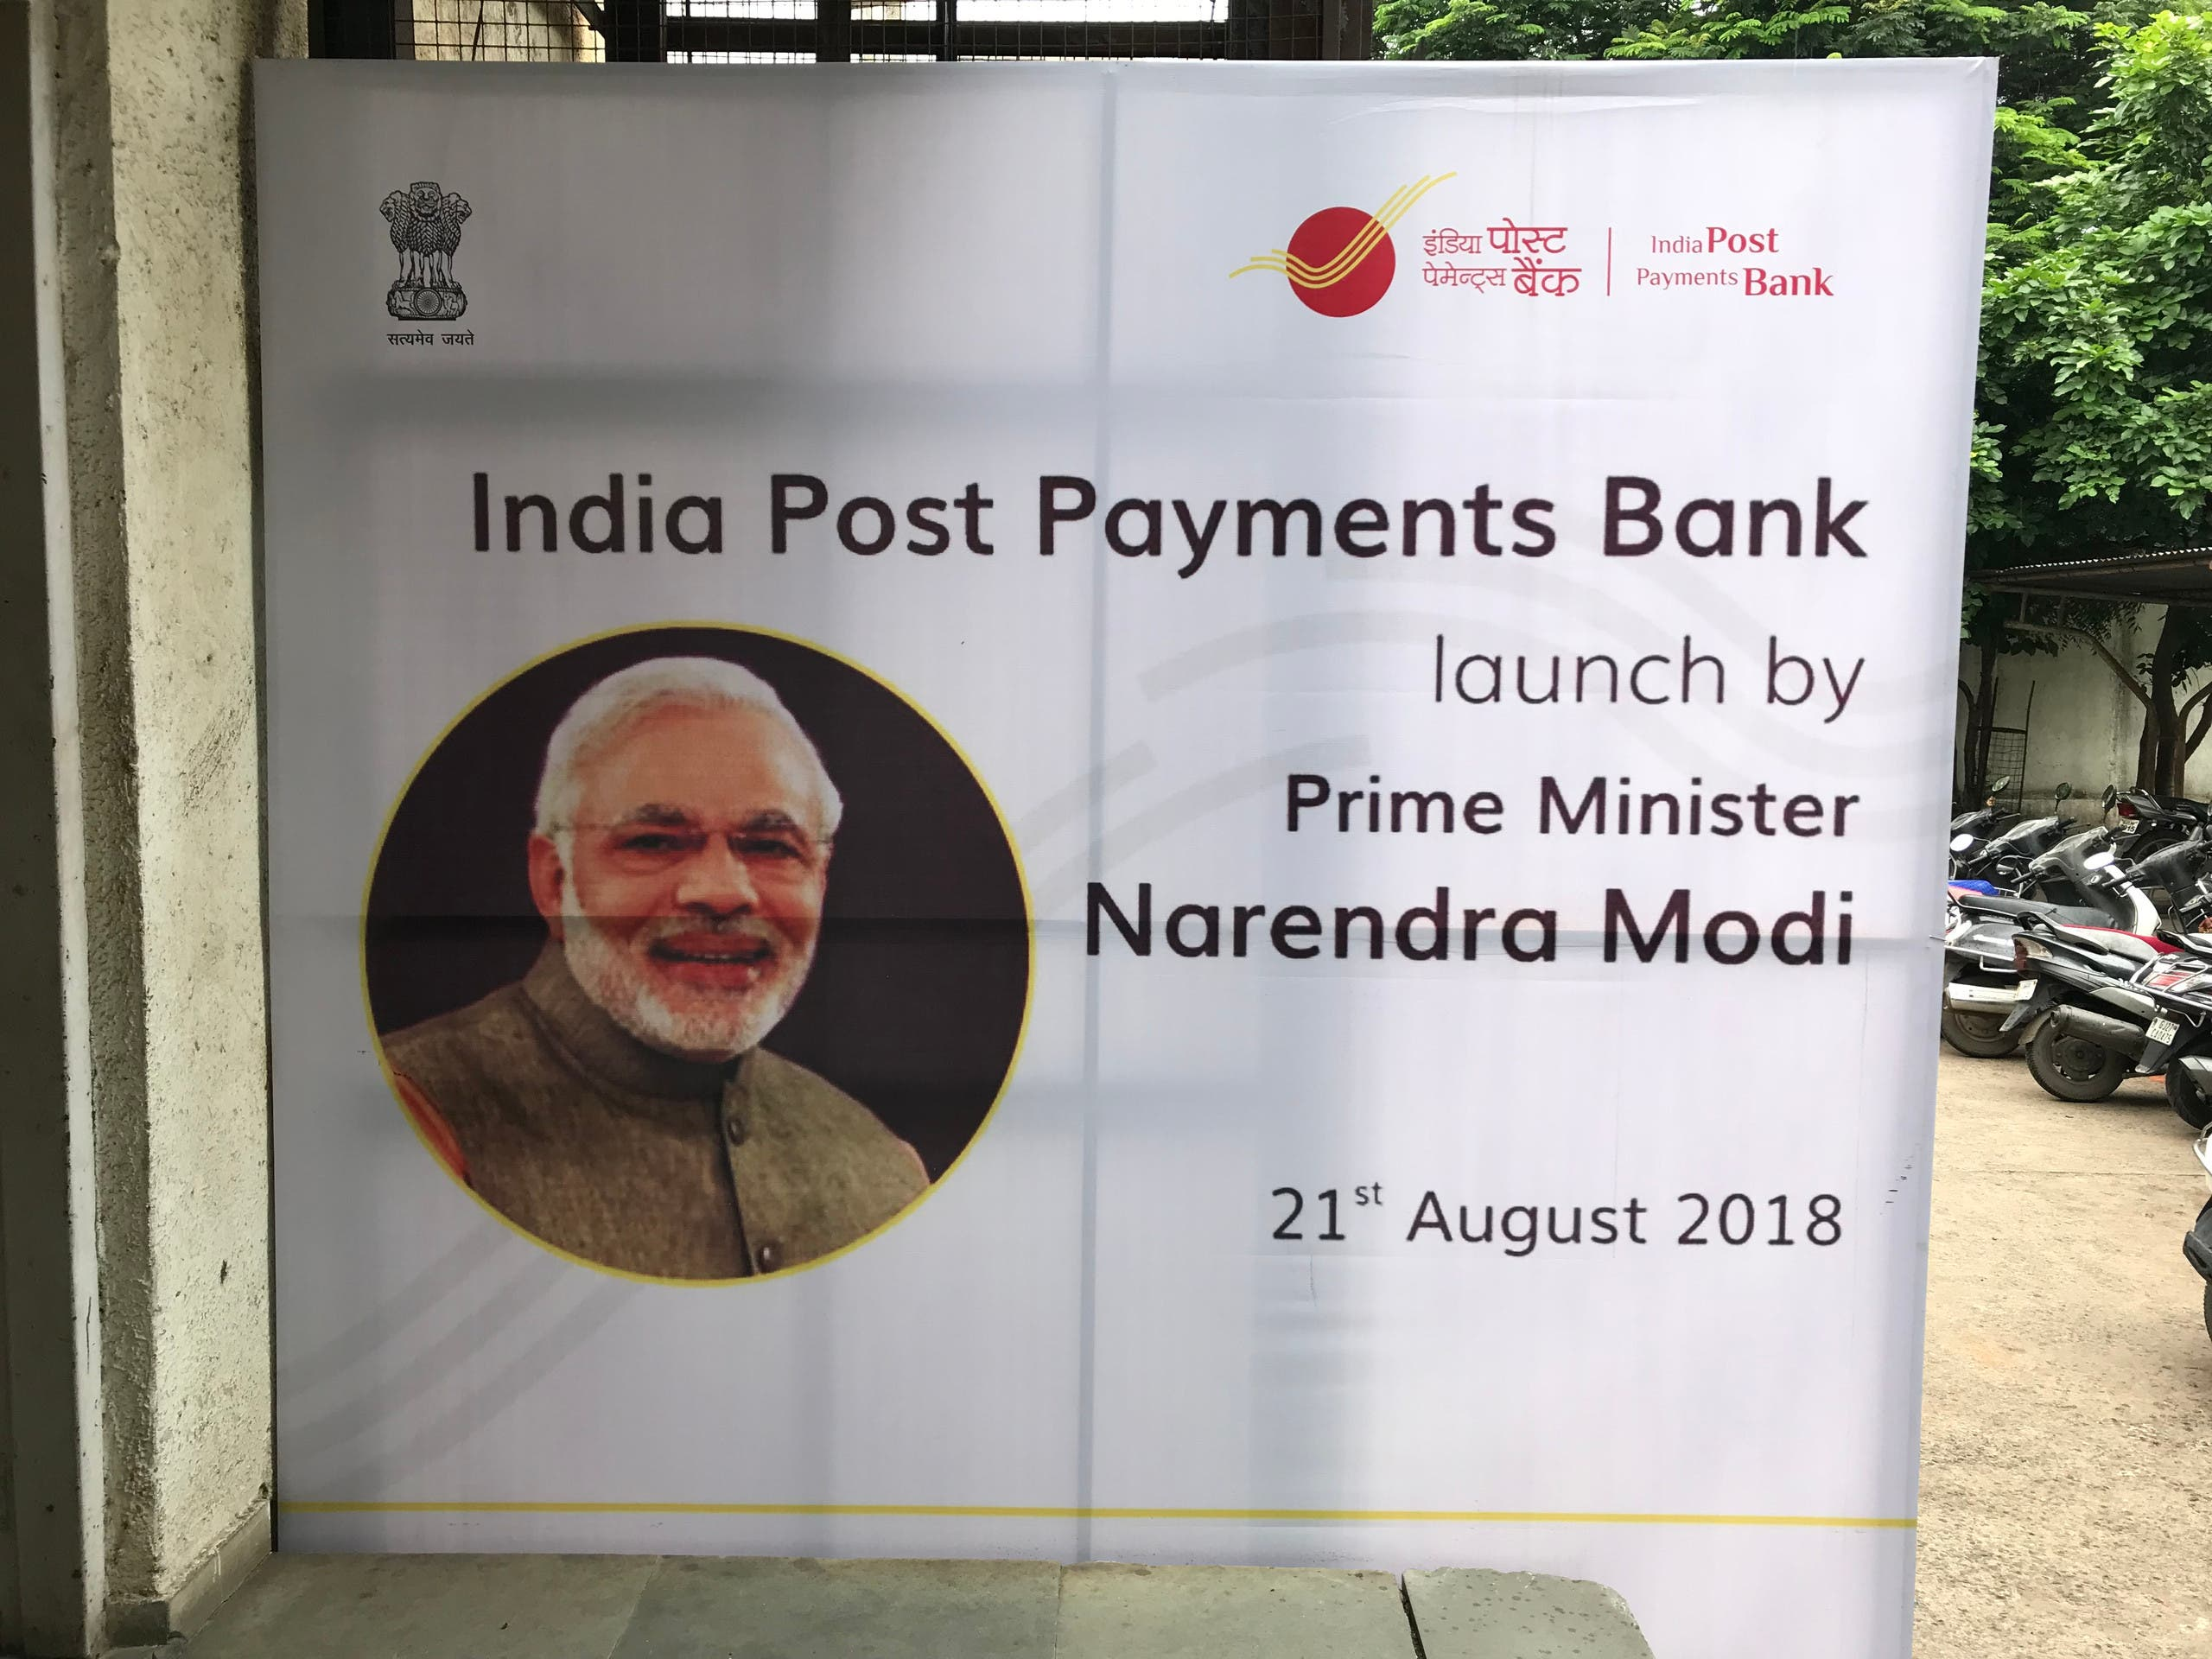 IPPB's launch by PM Modi has been rescheduled from August 21 to September 1. (Supplied)